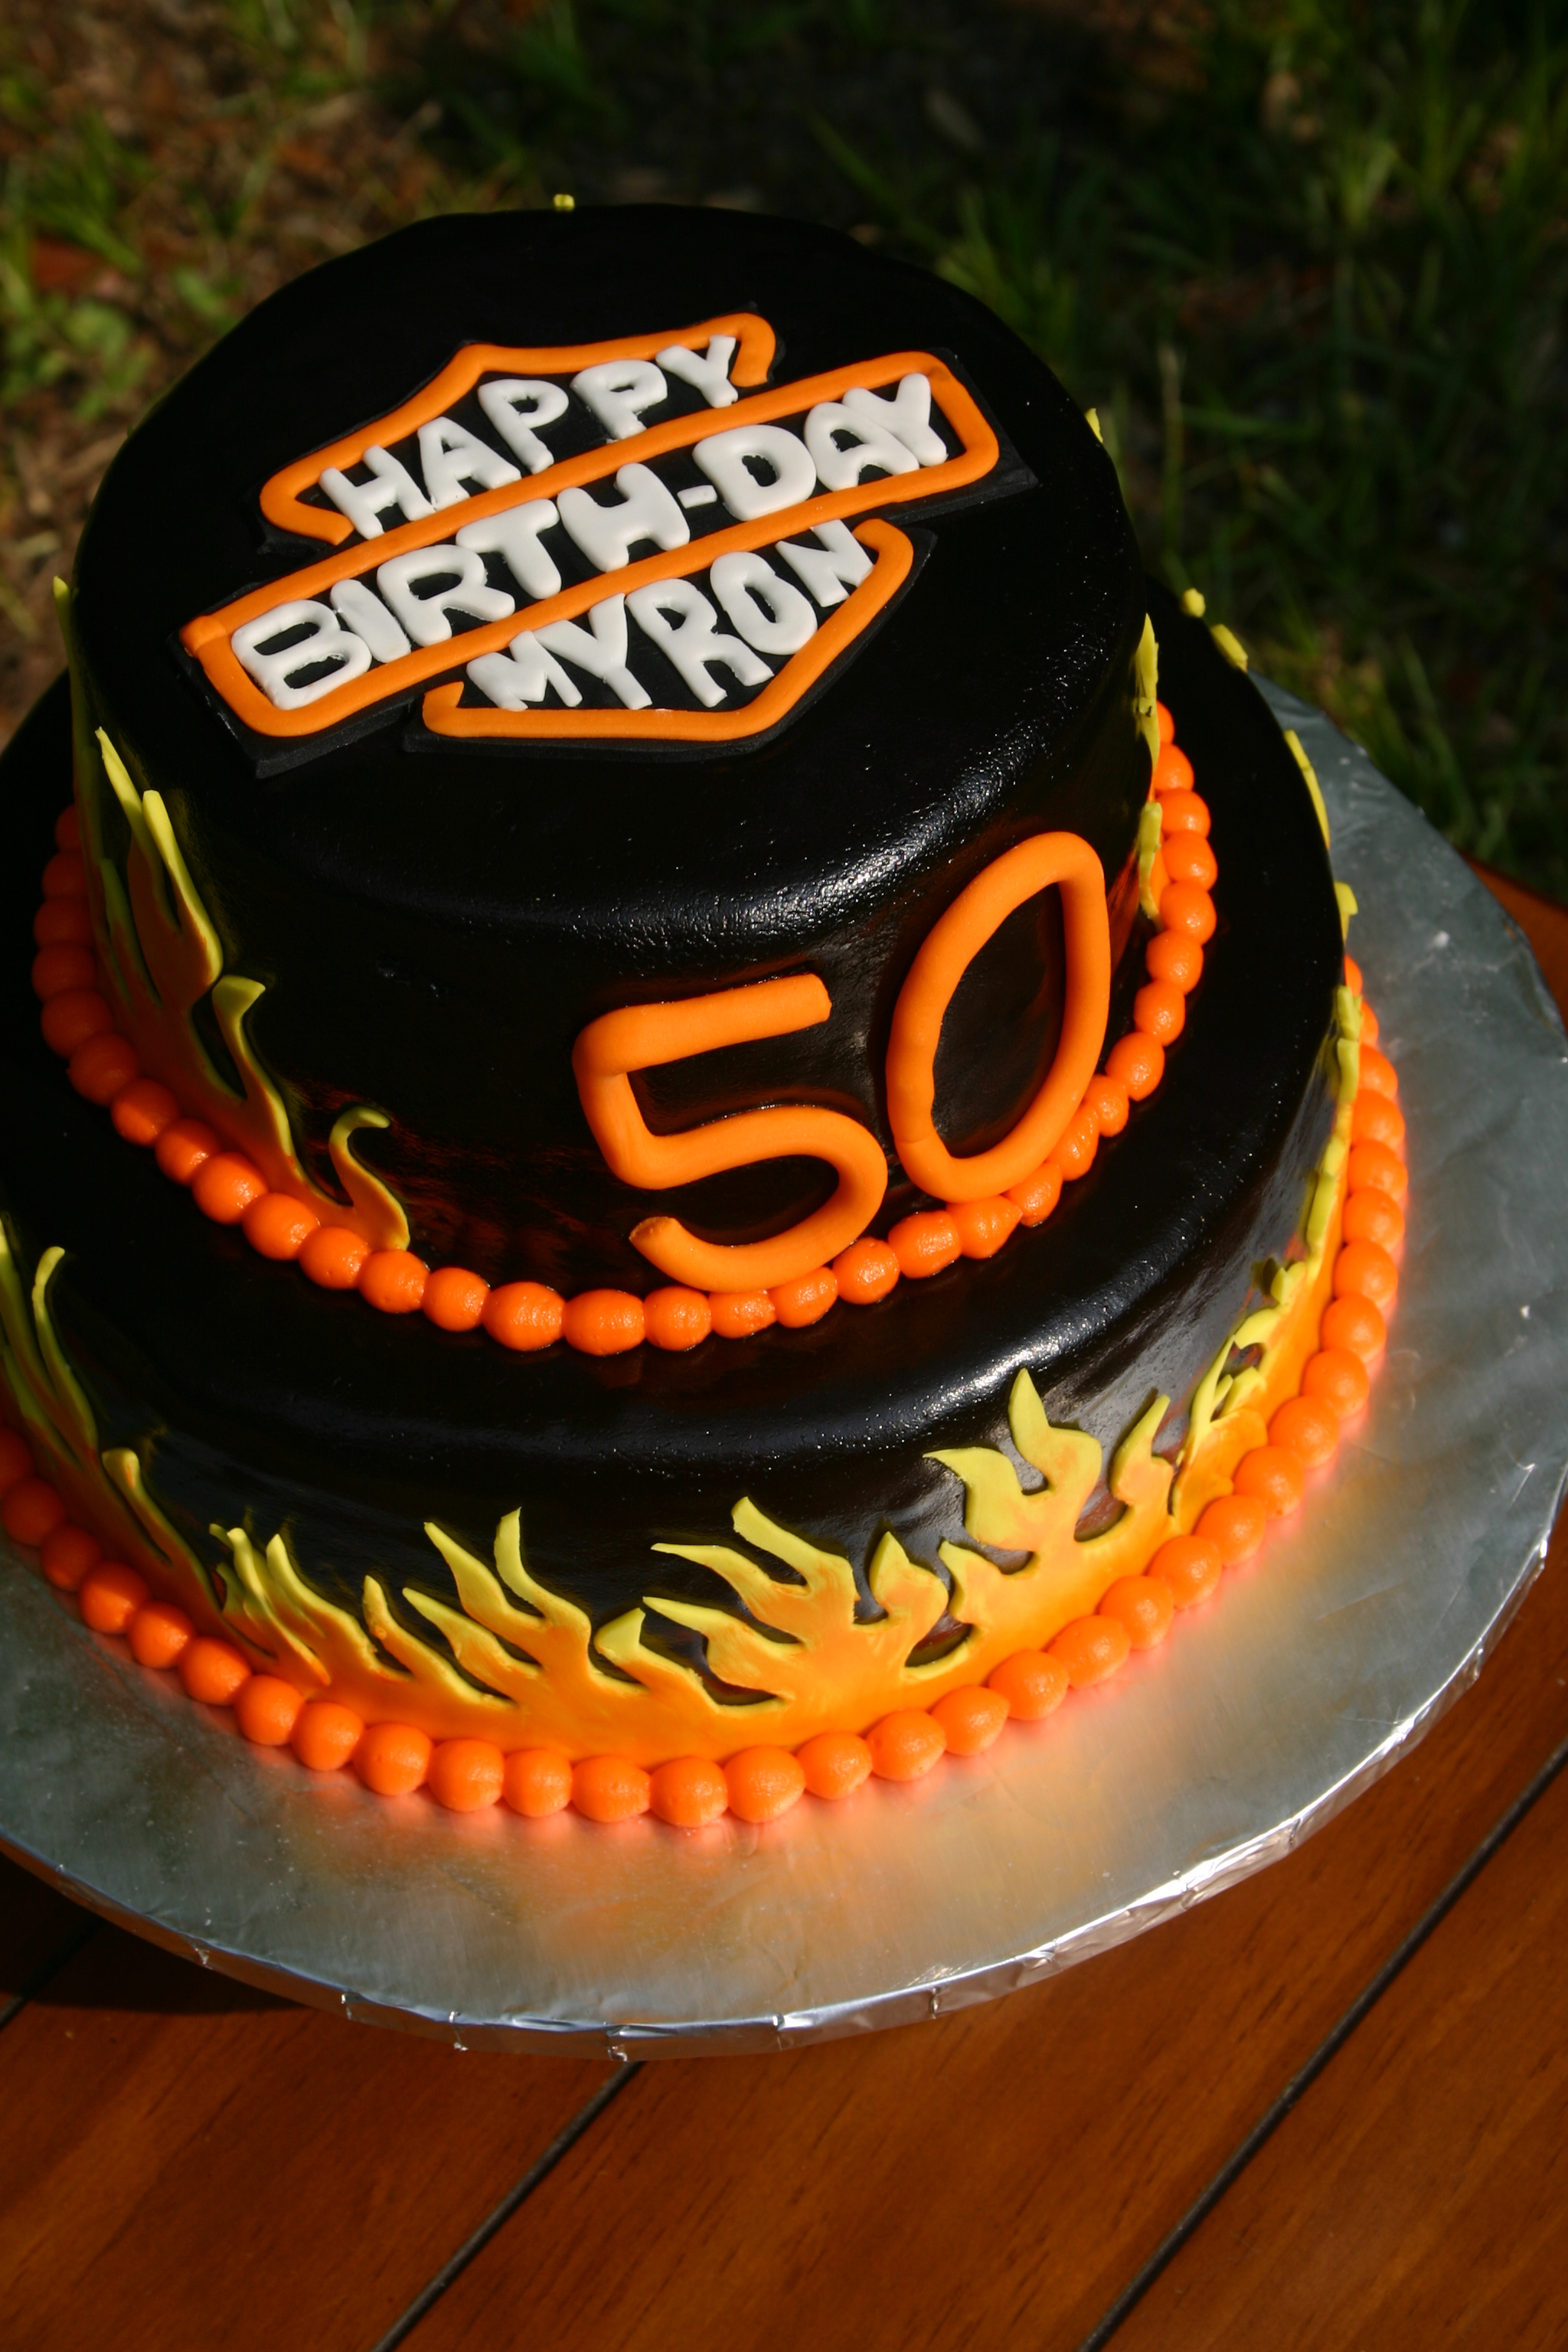 Harley Davidson Cake Lolo's Cakes & Sweets